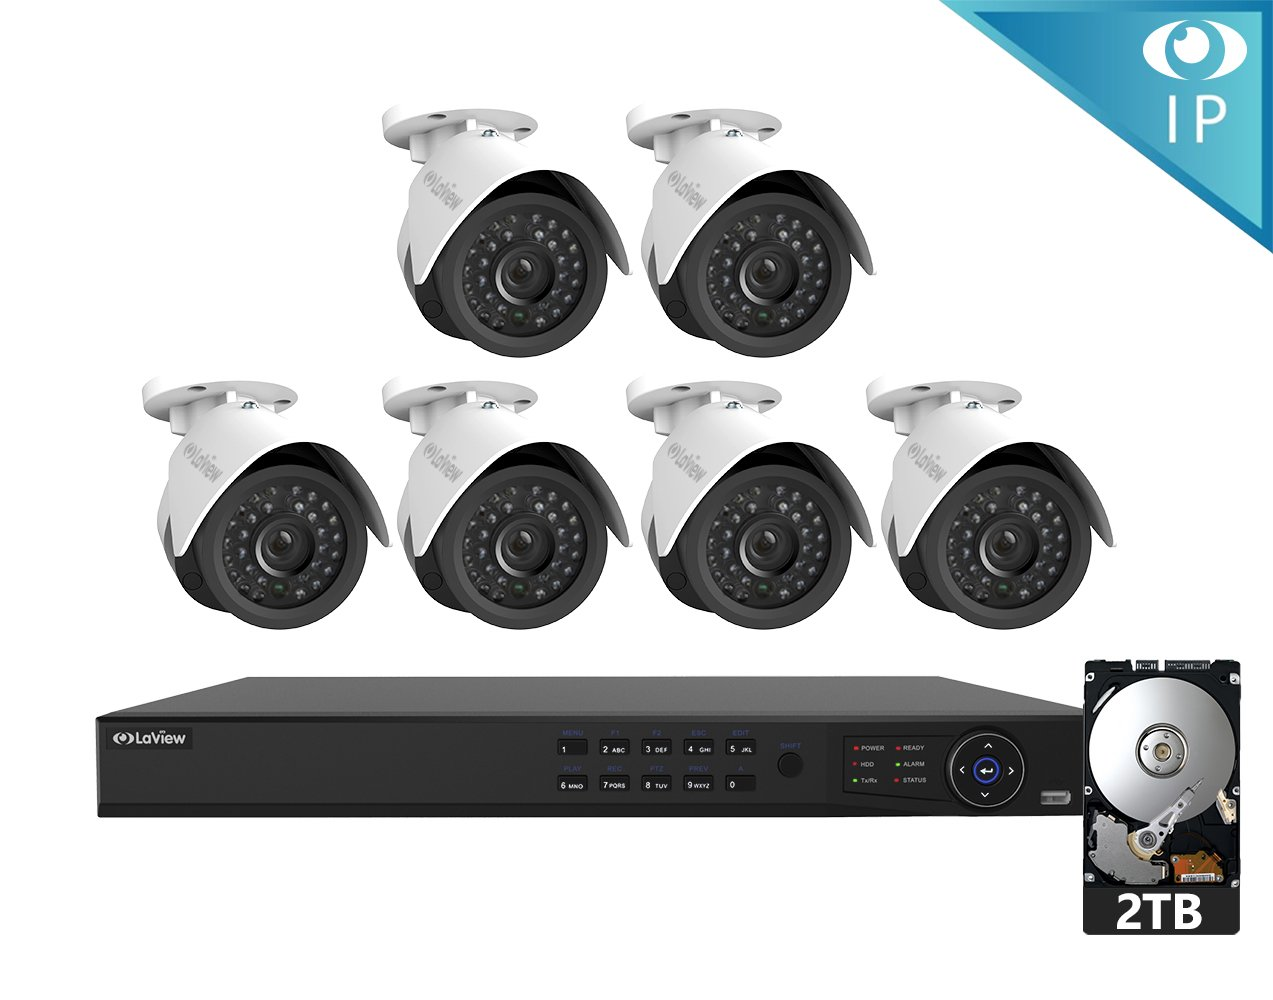 LaView 6 1080P IP Camera Security System, 8 Channel 1080P IP PoE NVR w/2TB HDD and 6 1080P 2MP White Bullet Surveillance Camera Kit by LaView